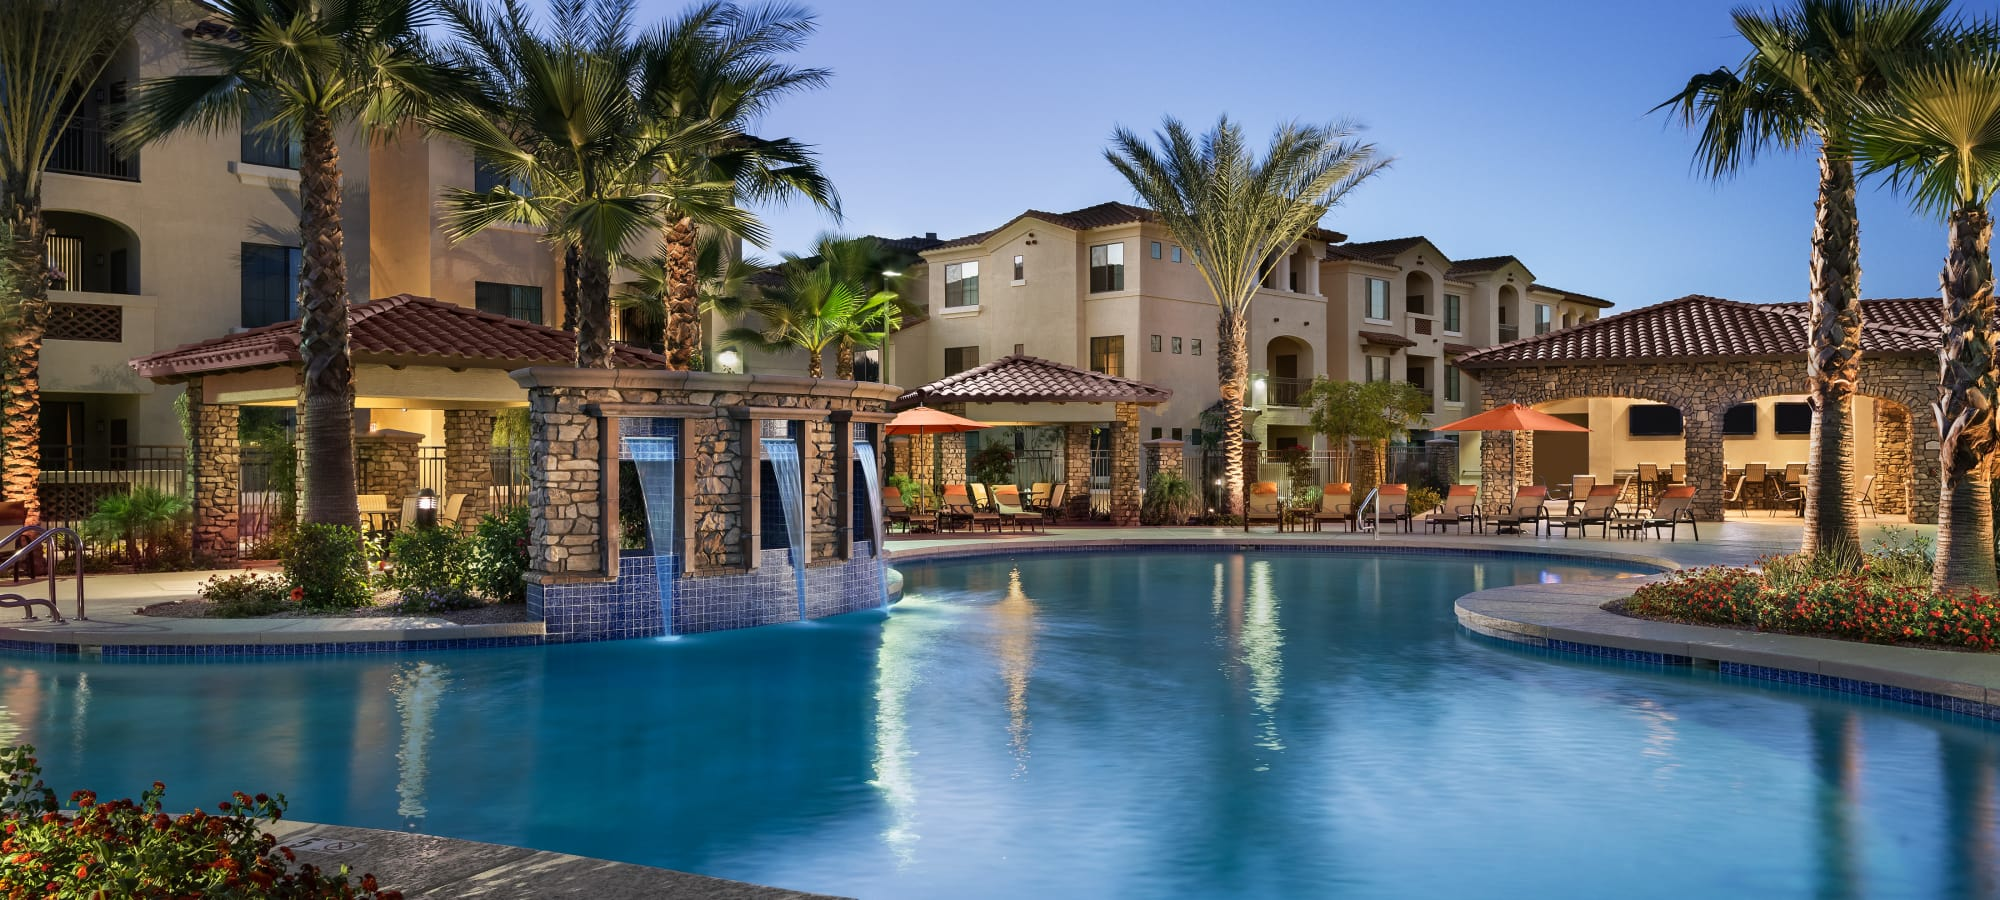 Resort swimming pool at San Valencia in Chandler, Arizona